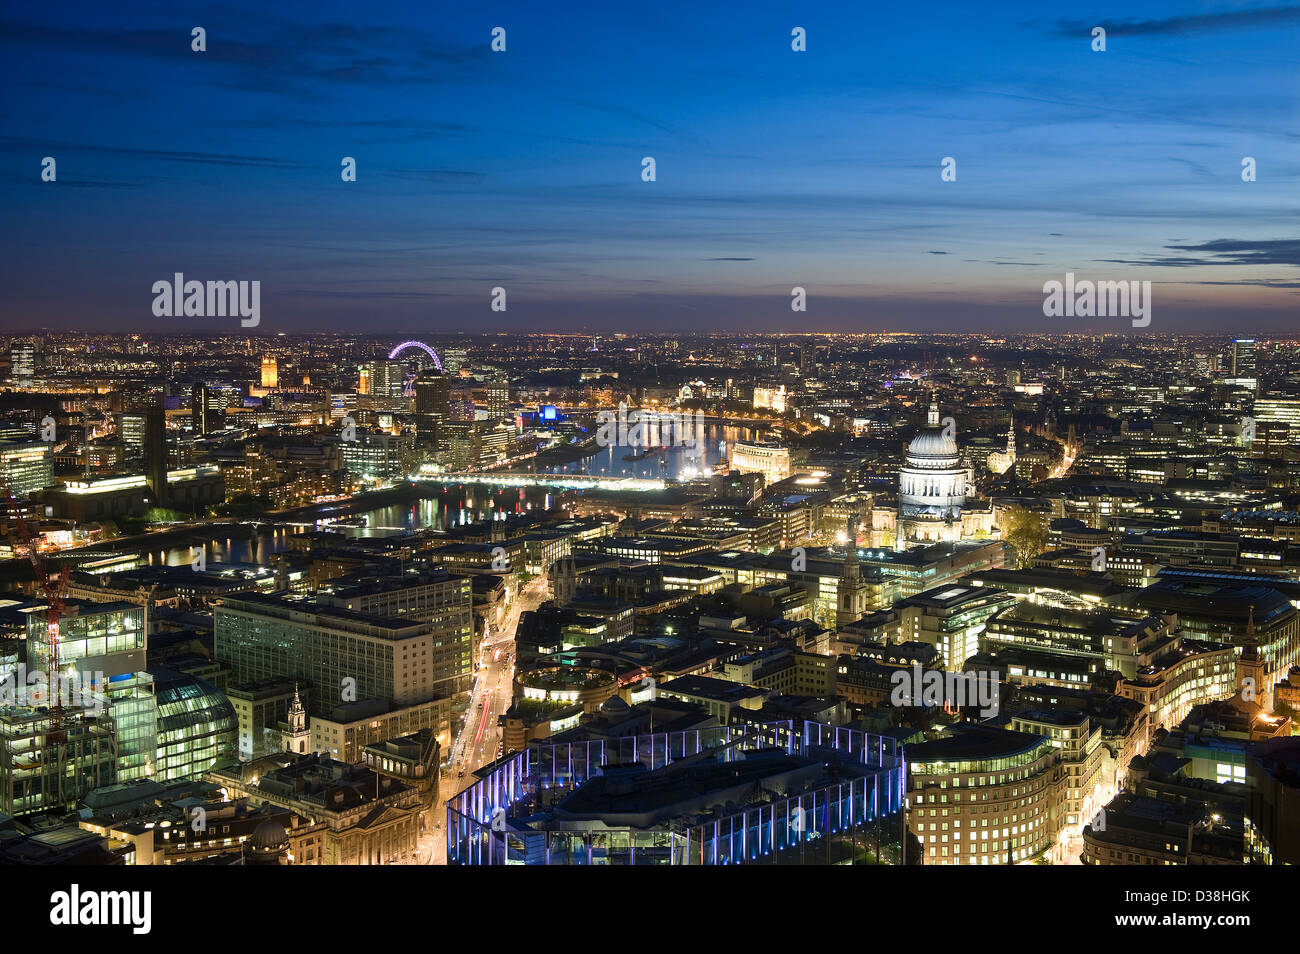 Aerial view of cityscape lit up at night - Stock Image